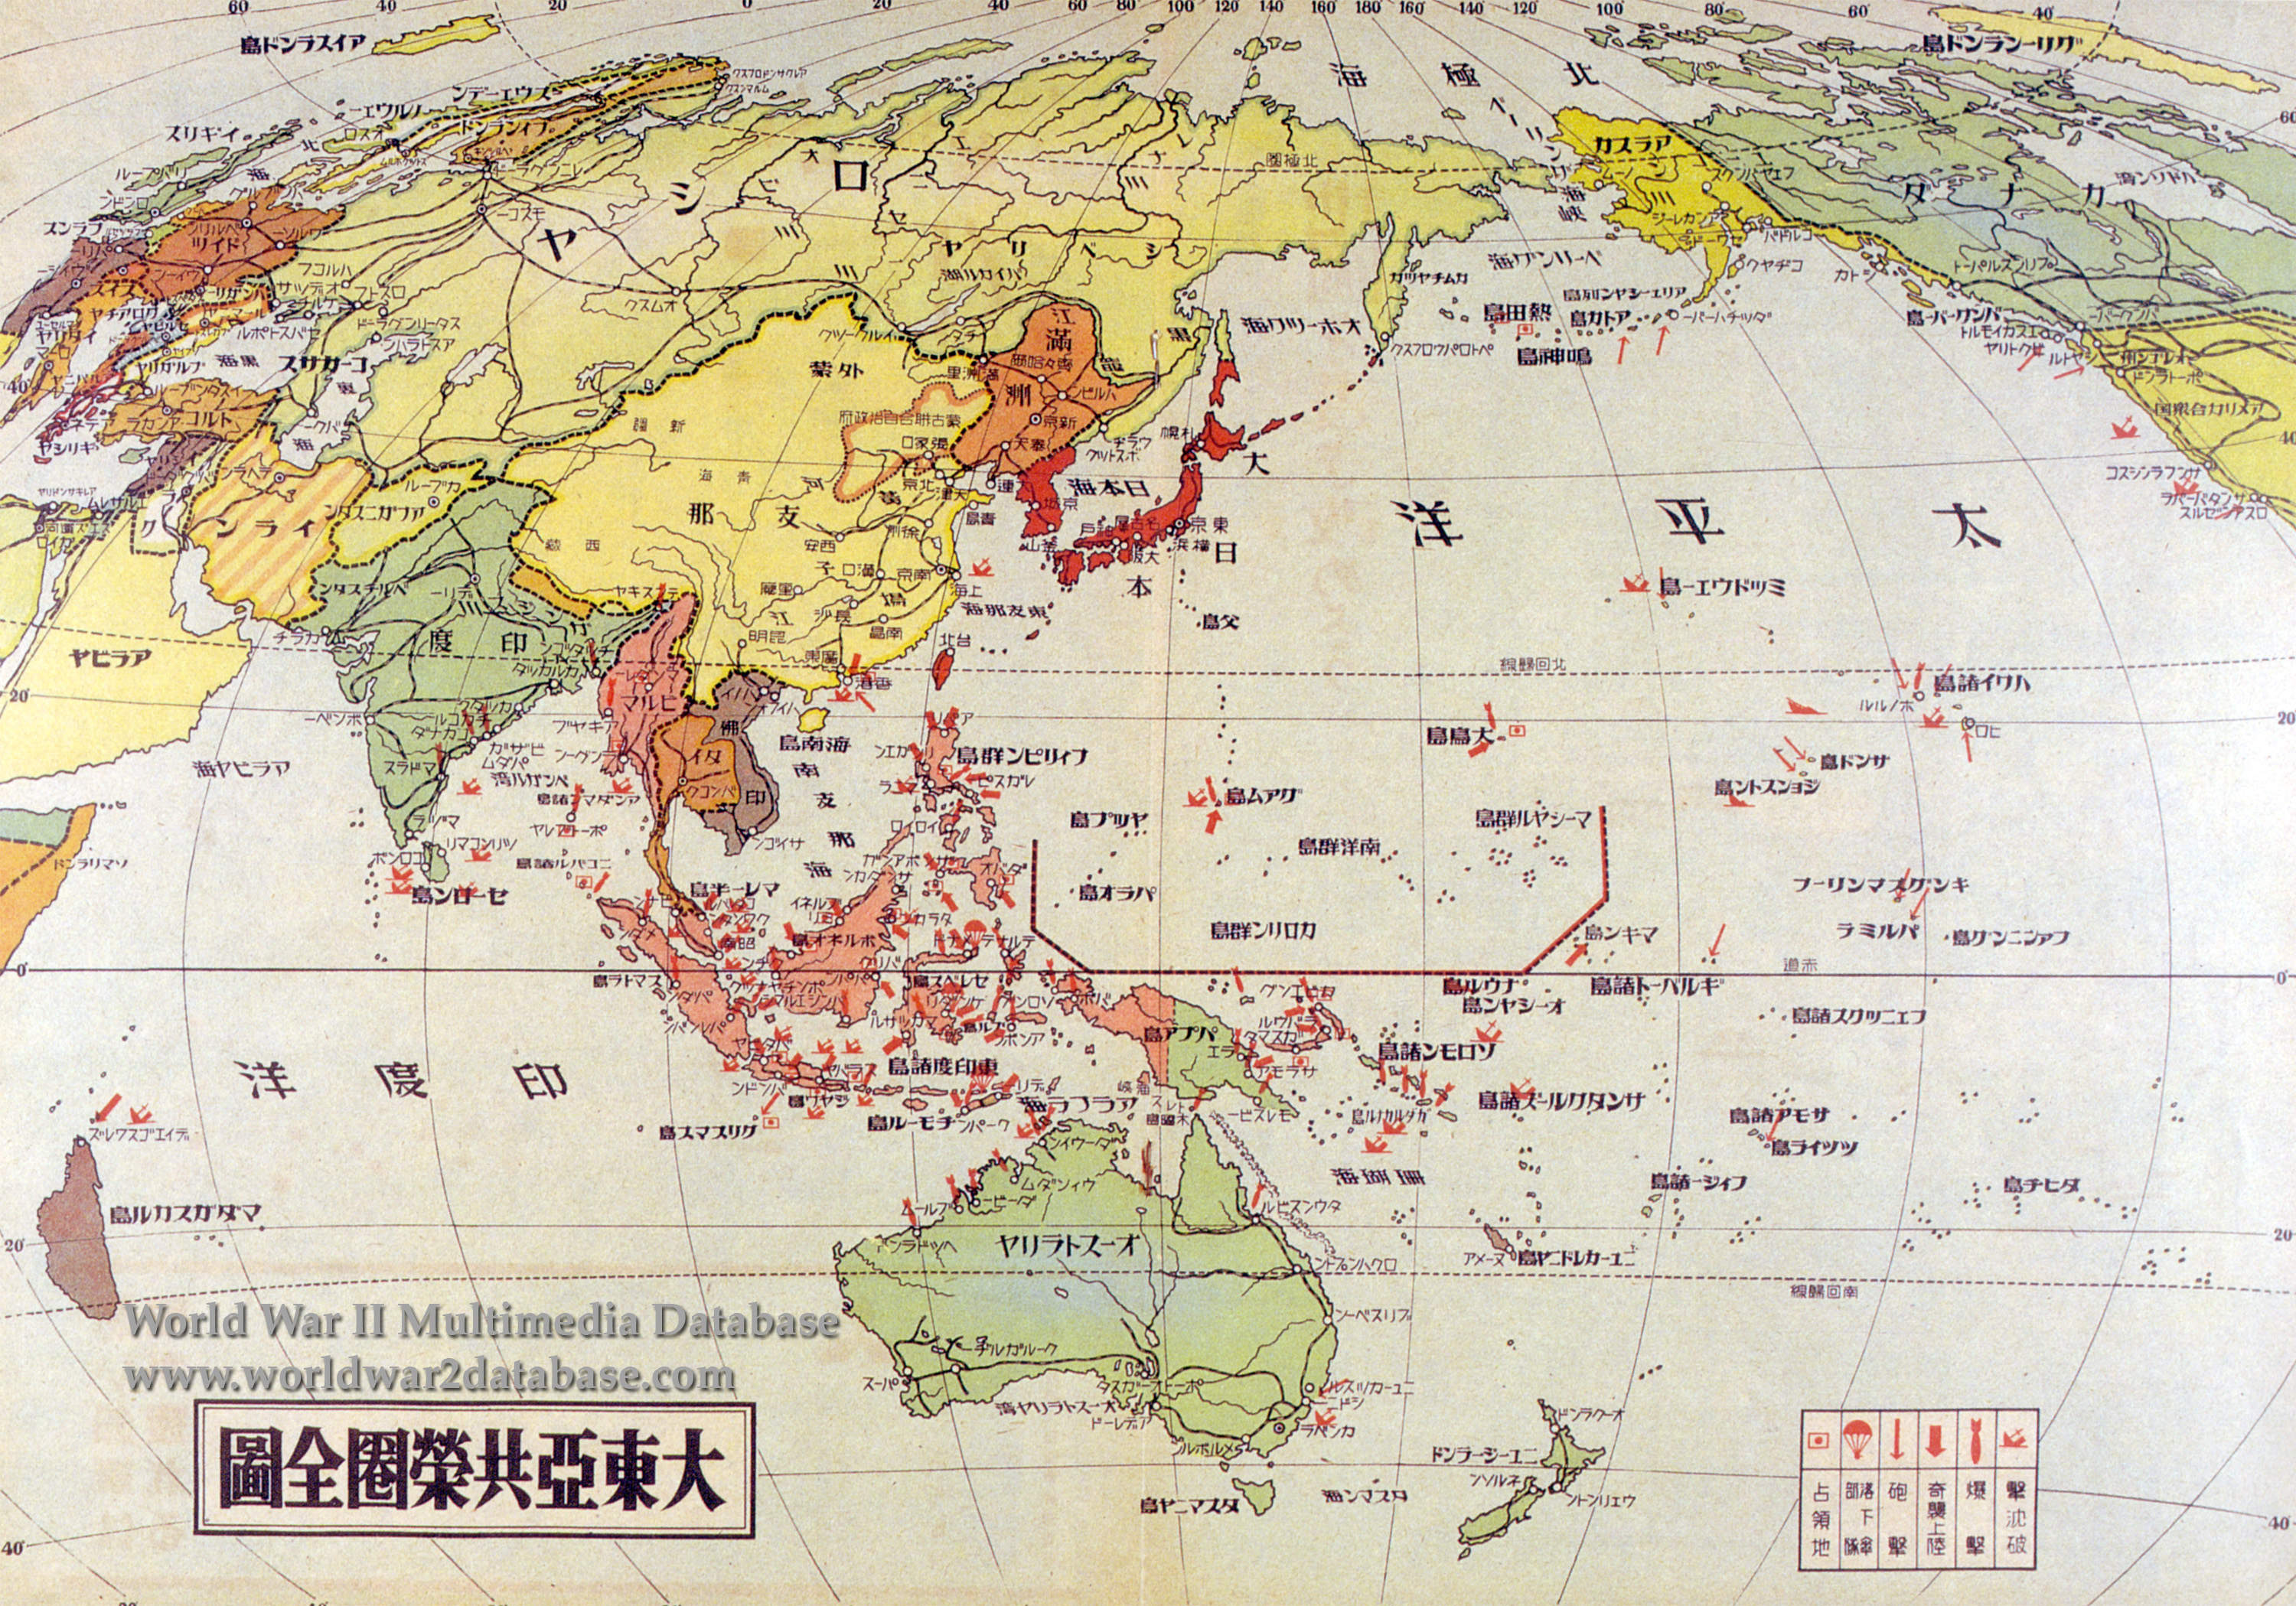 Japanese pacific war map the world war ii multimedia database japanese pacific war map gumiabroncs Gallery